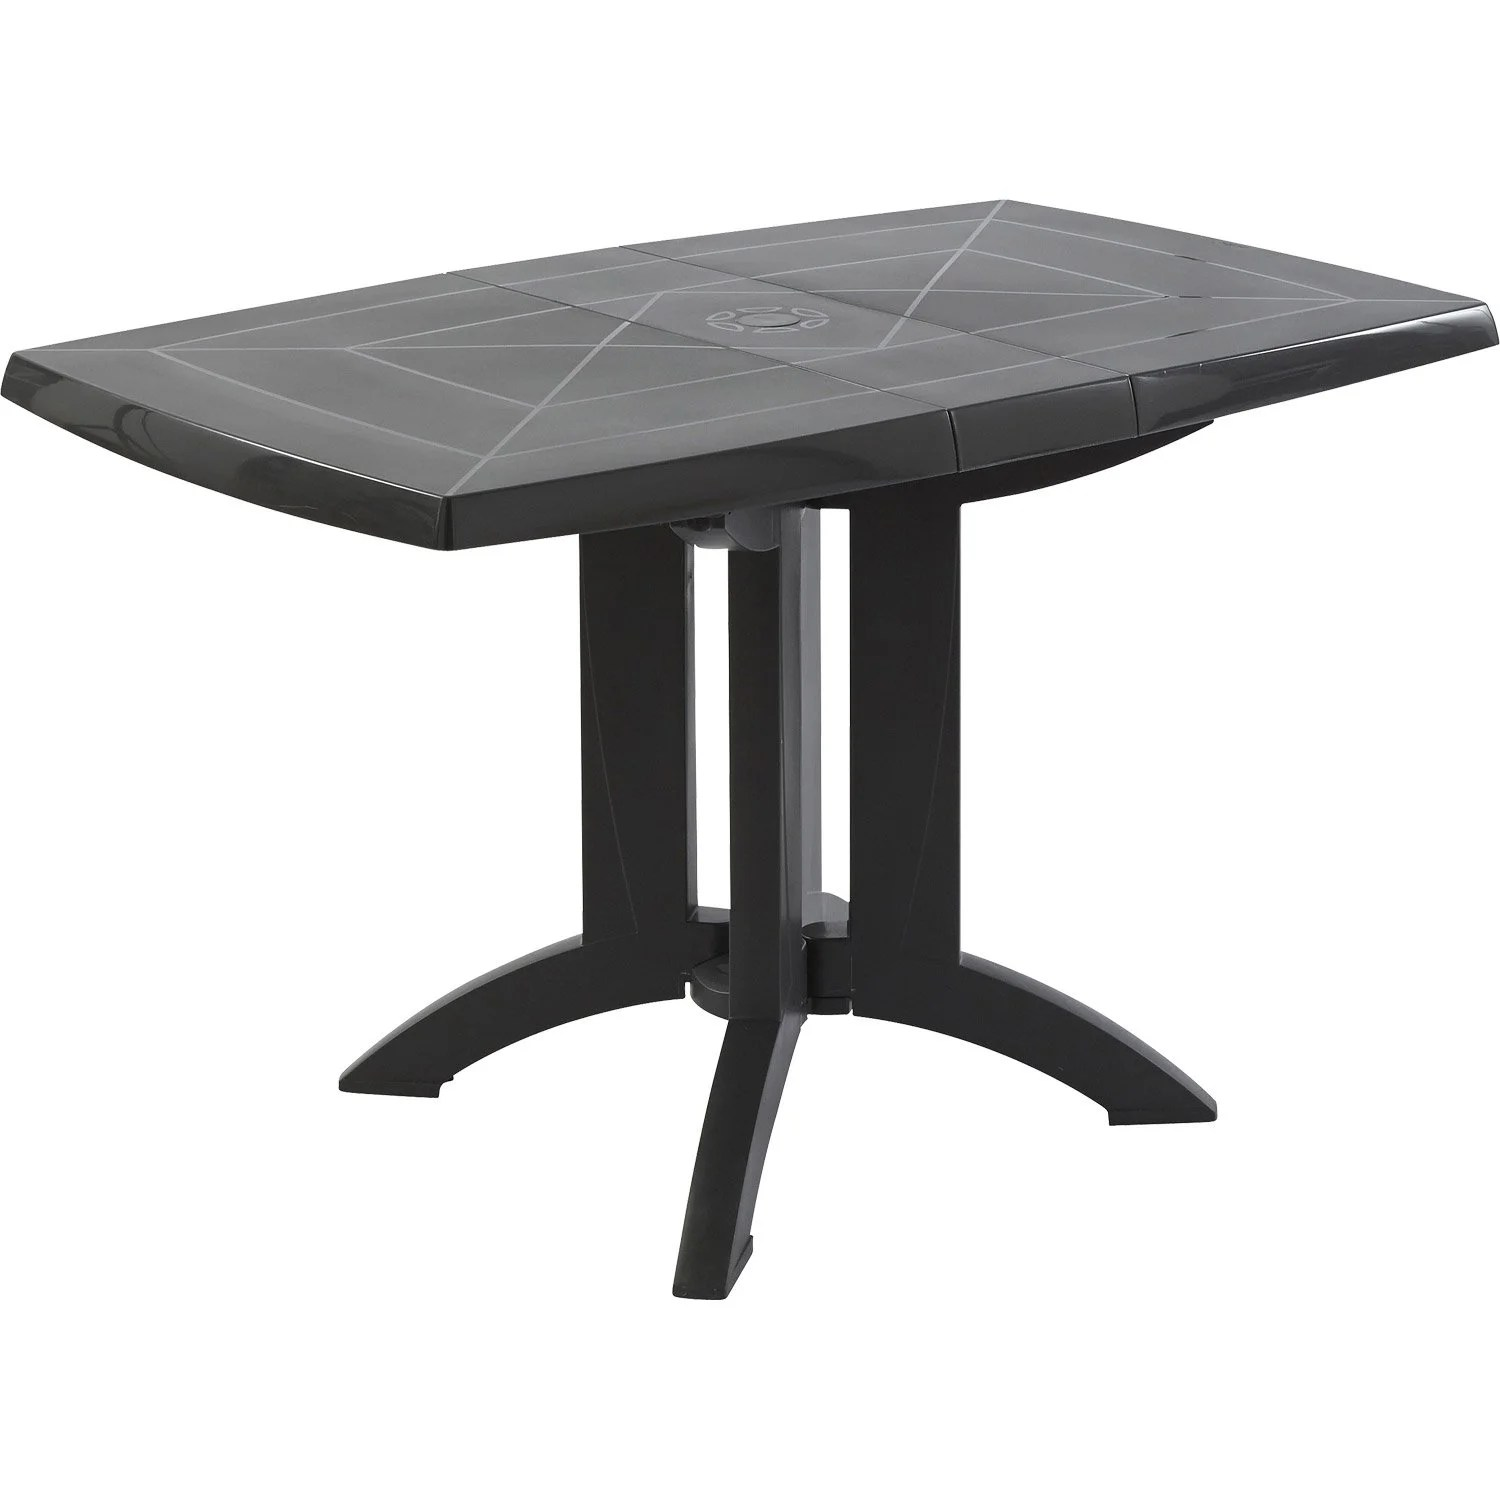 Table De Jardin Table De Jardin Grosfillex Véga Rectangulaire Anthracite 4